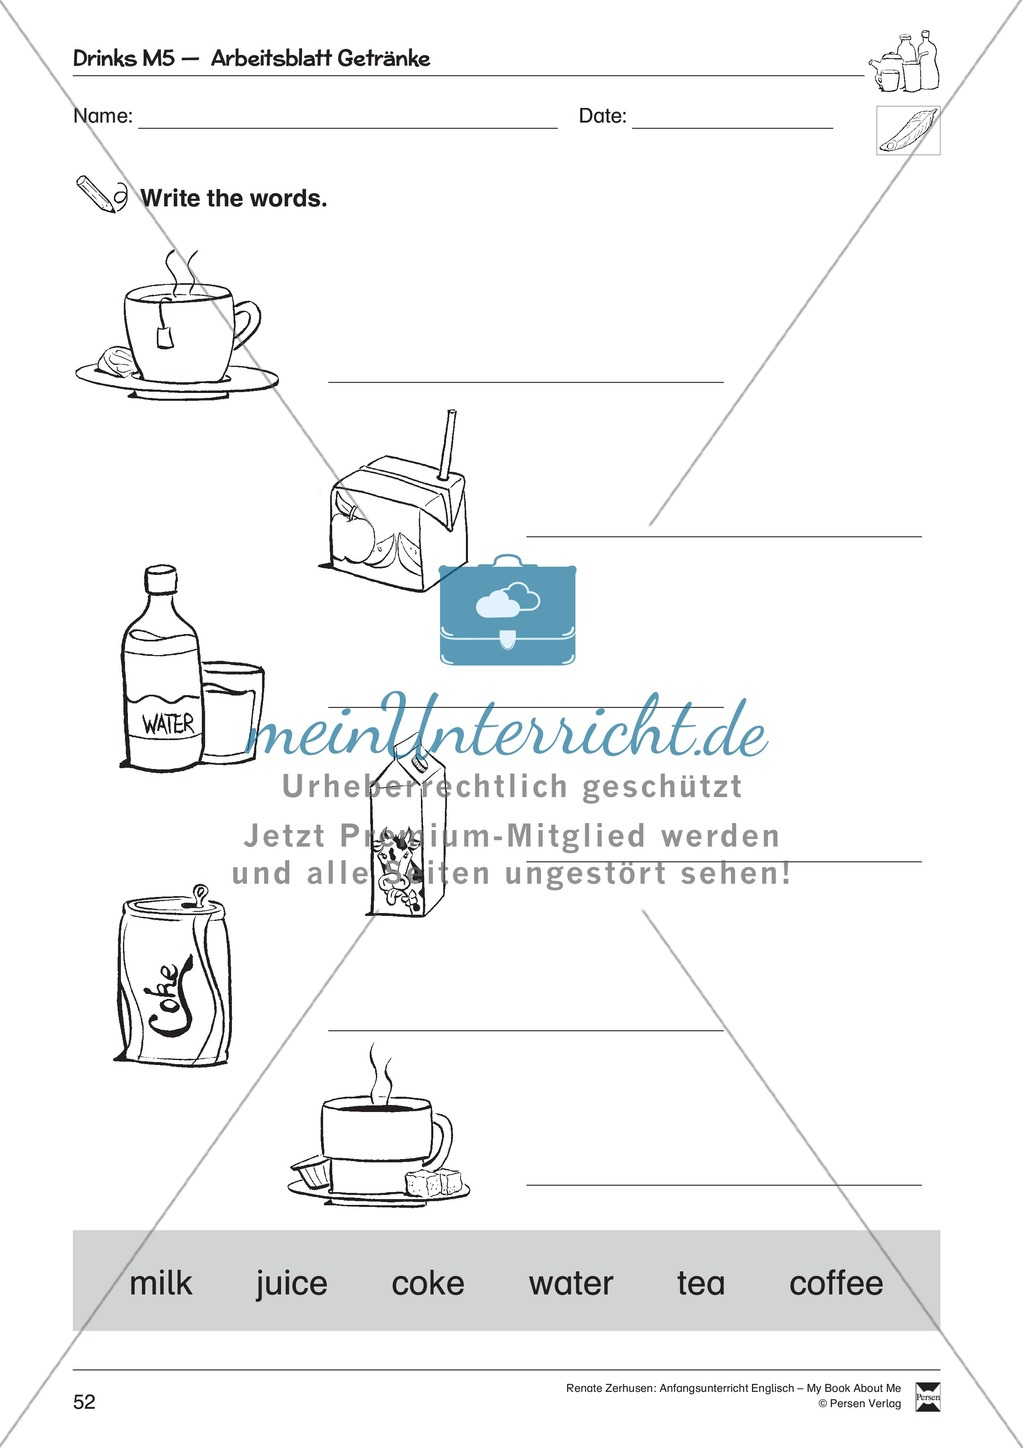 Drinks vocabulary: Worksheets on drinks (Binnendifferenziert) Preview 7